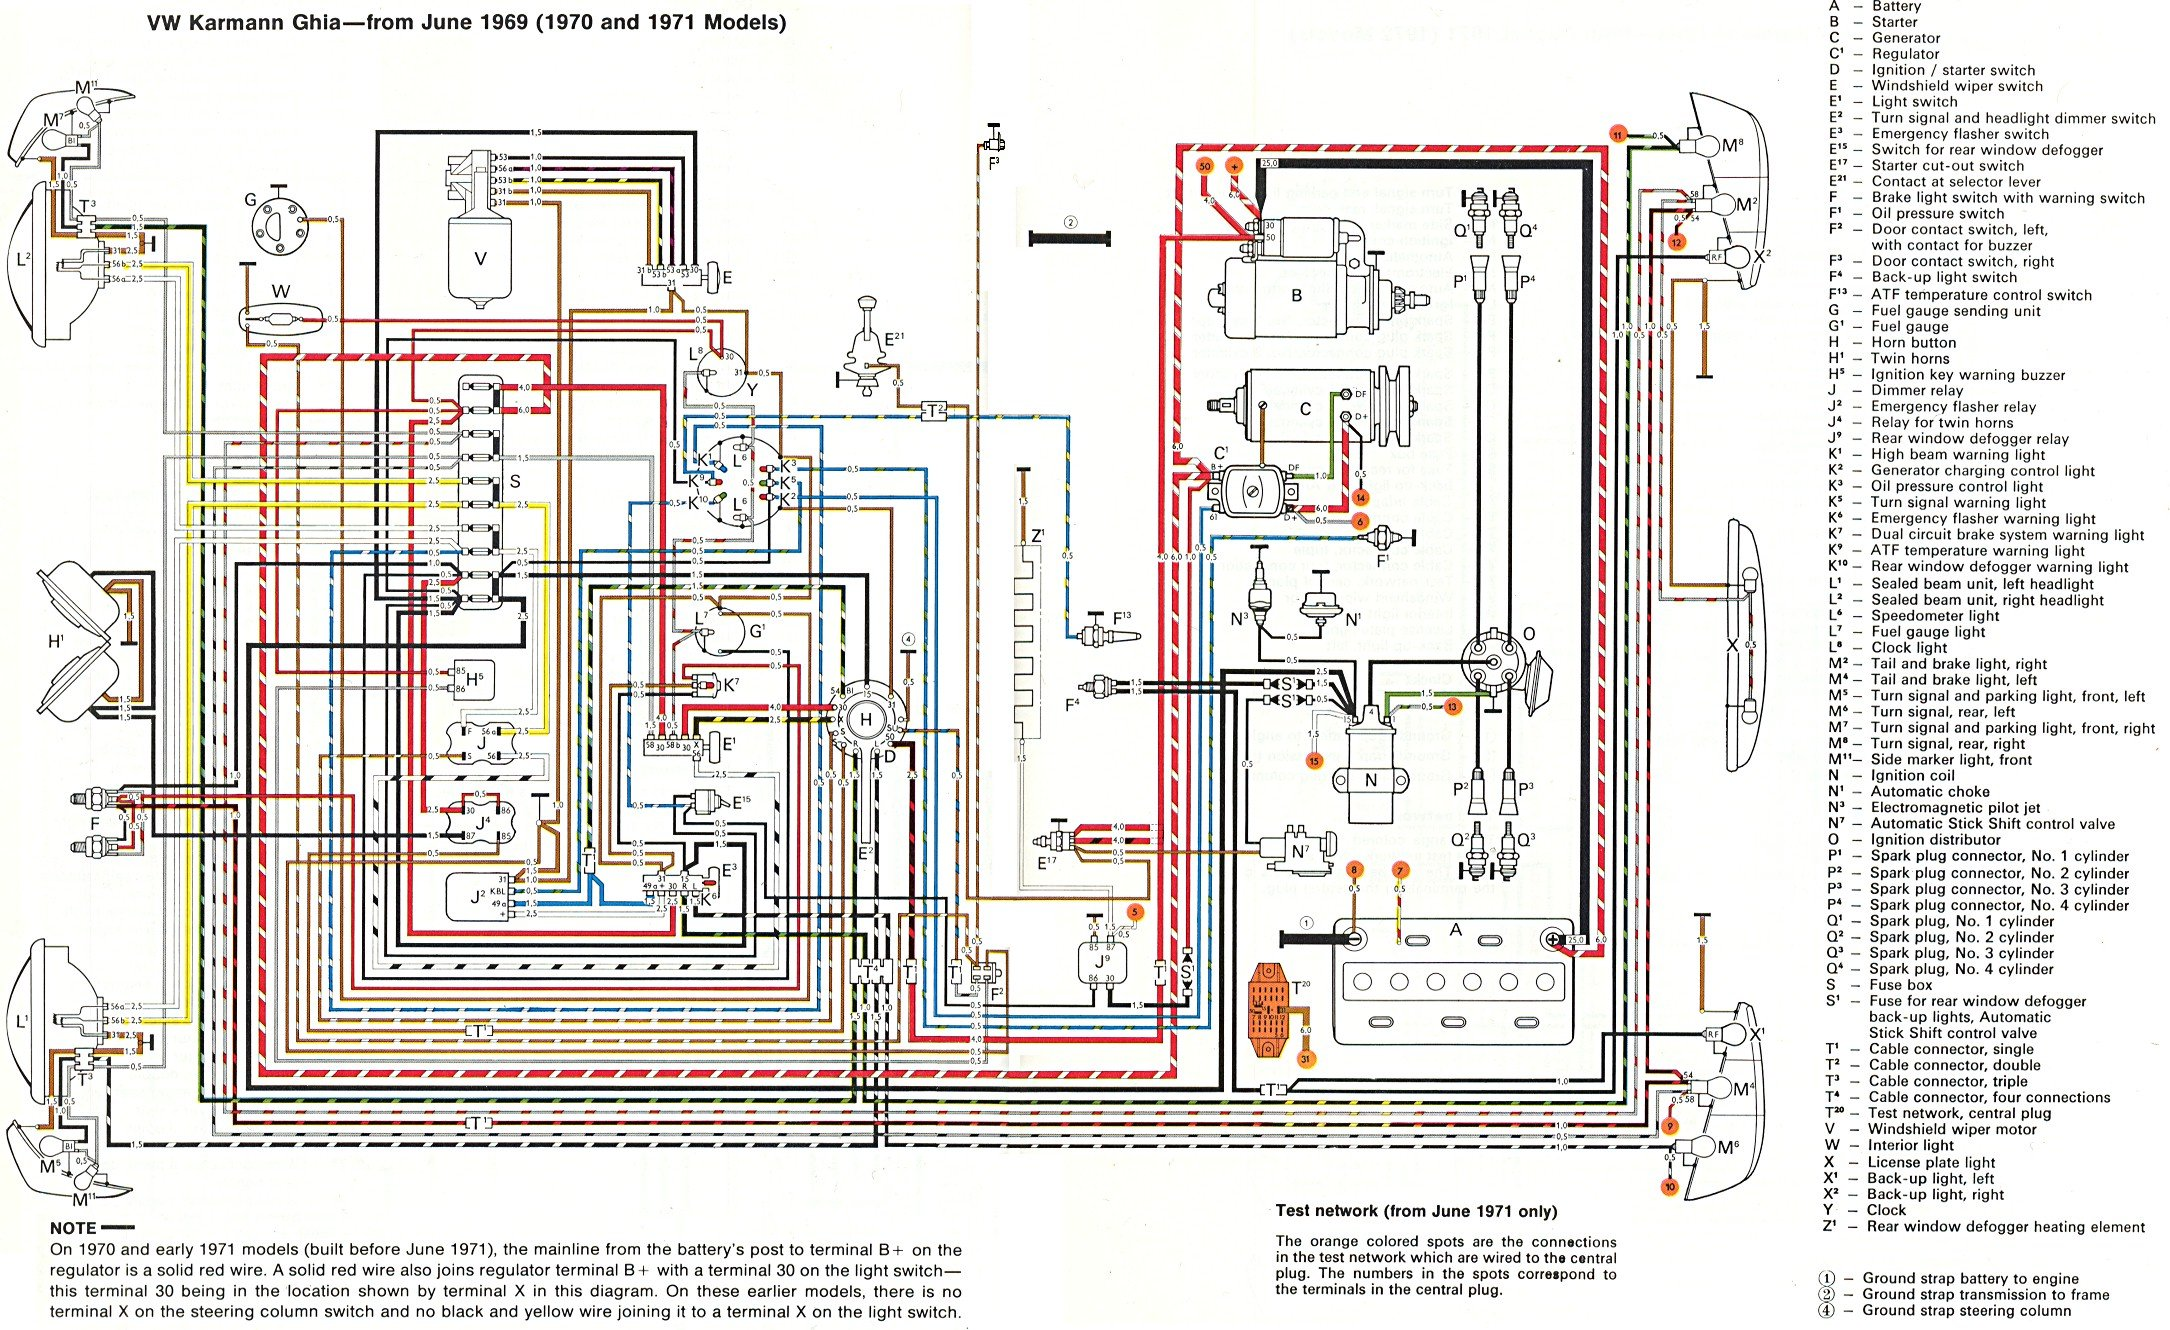 Vw Thing Wiring Diagram Further 68 Camaro Under Dash Harness Rh 108 61 128